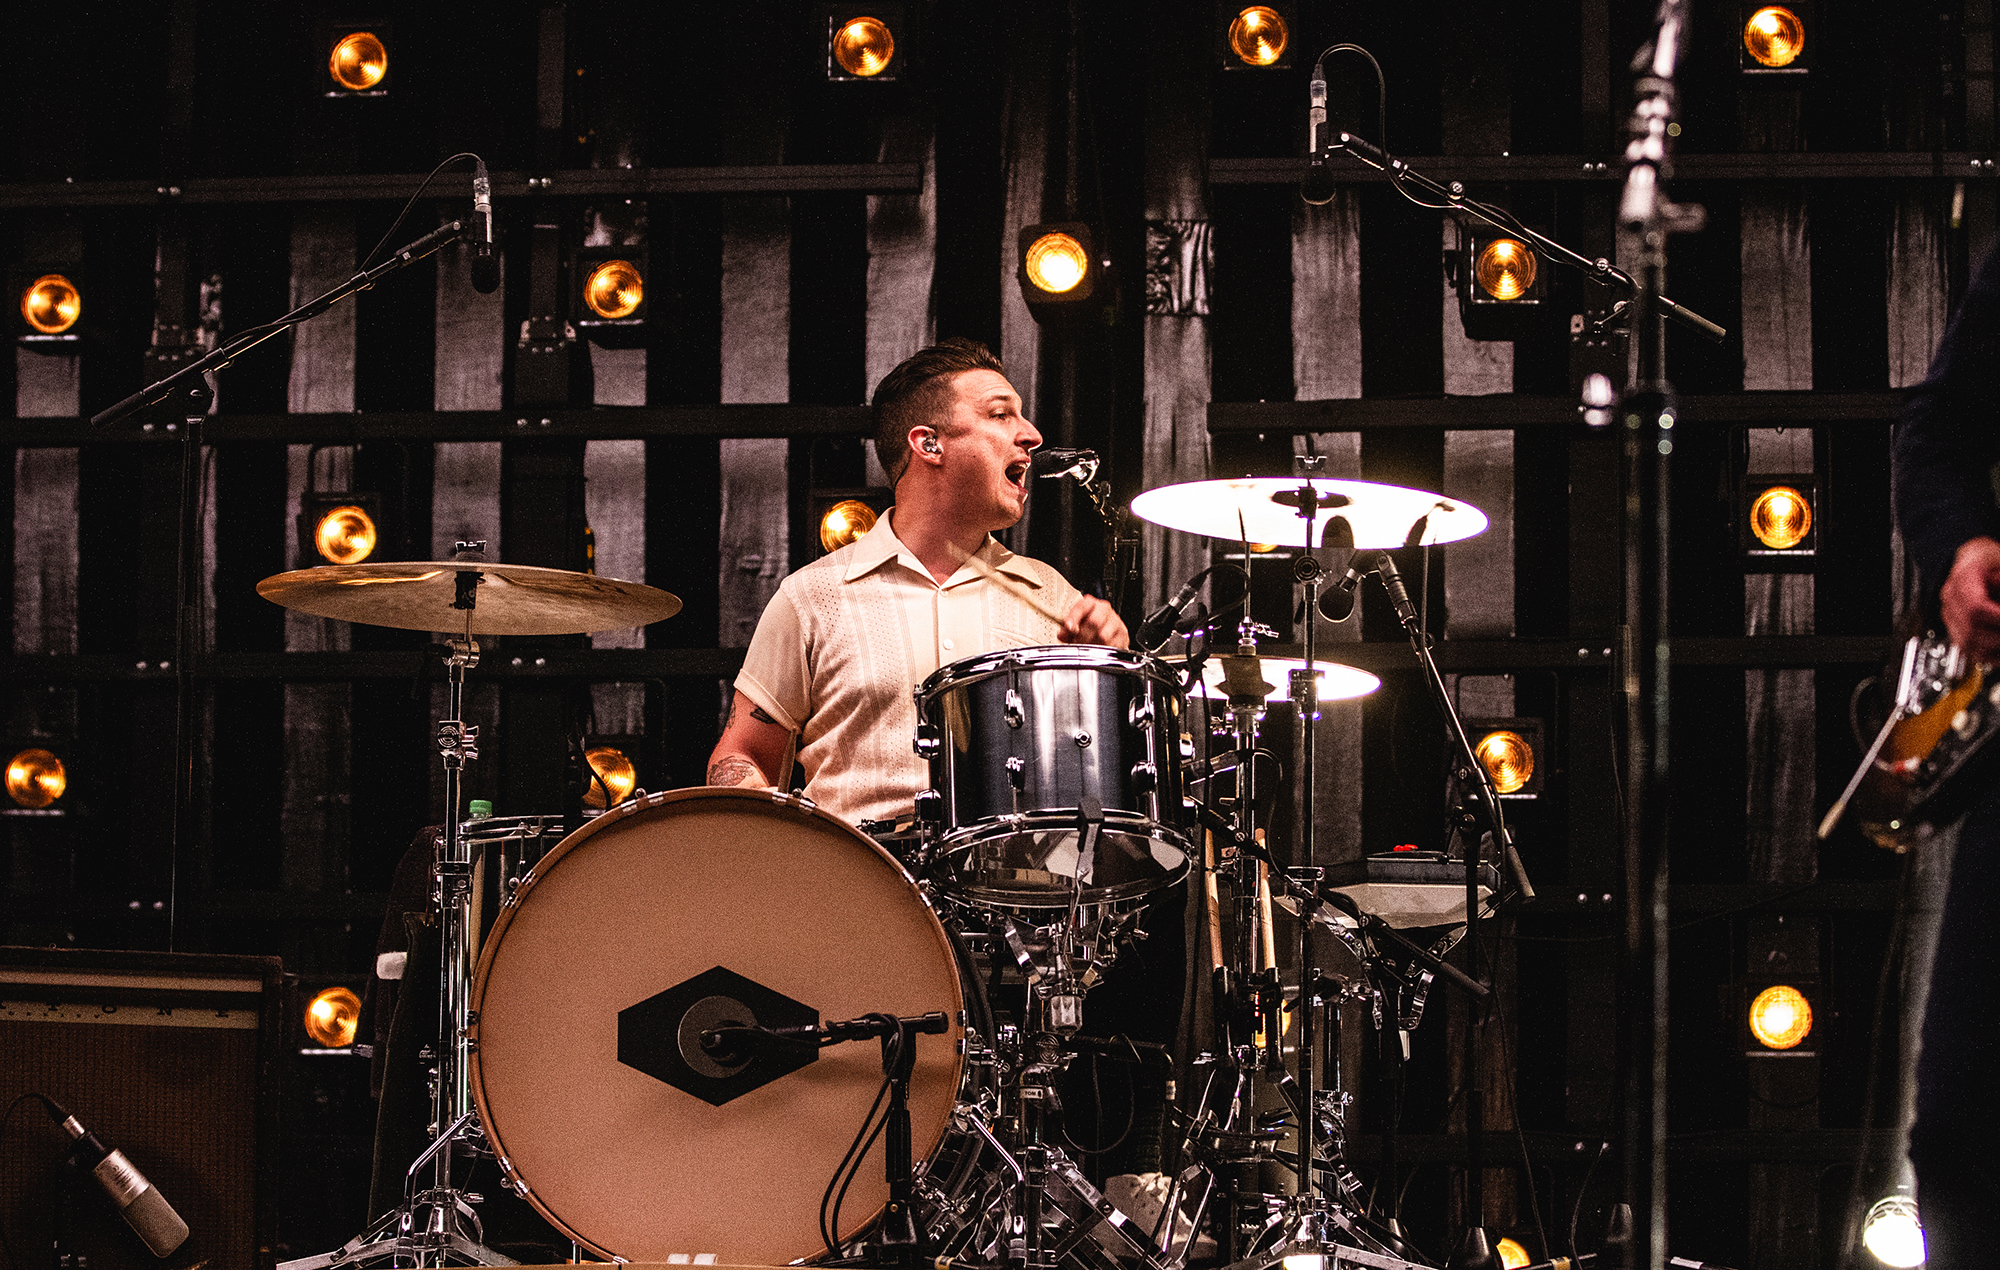 Matt Helders Reflects On Buying His First Drum Kit And First Gig With Arctic Monkeys